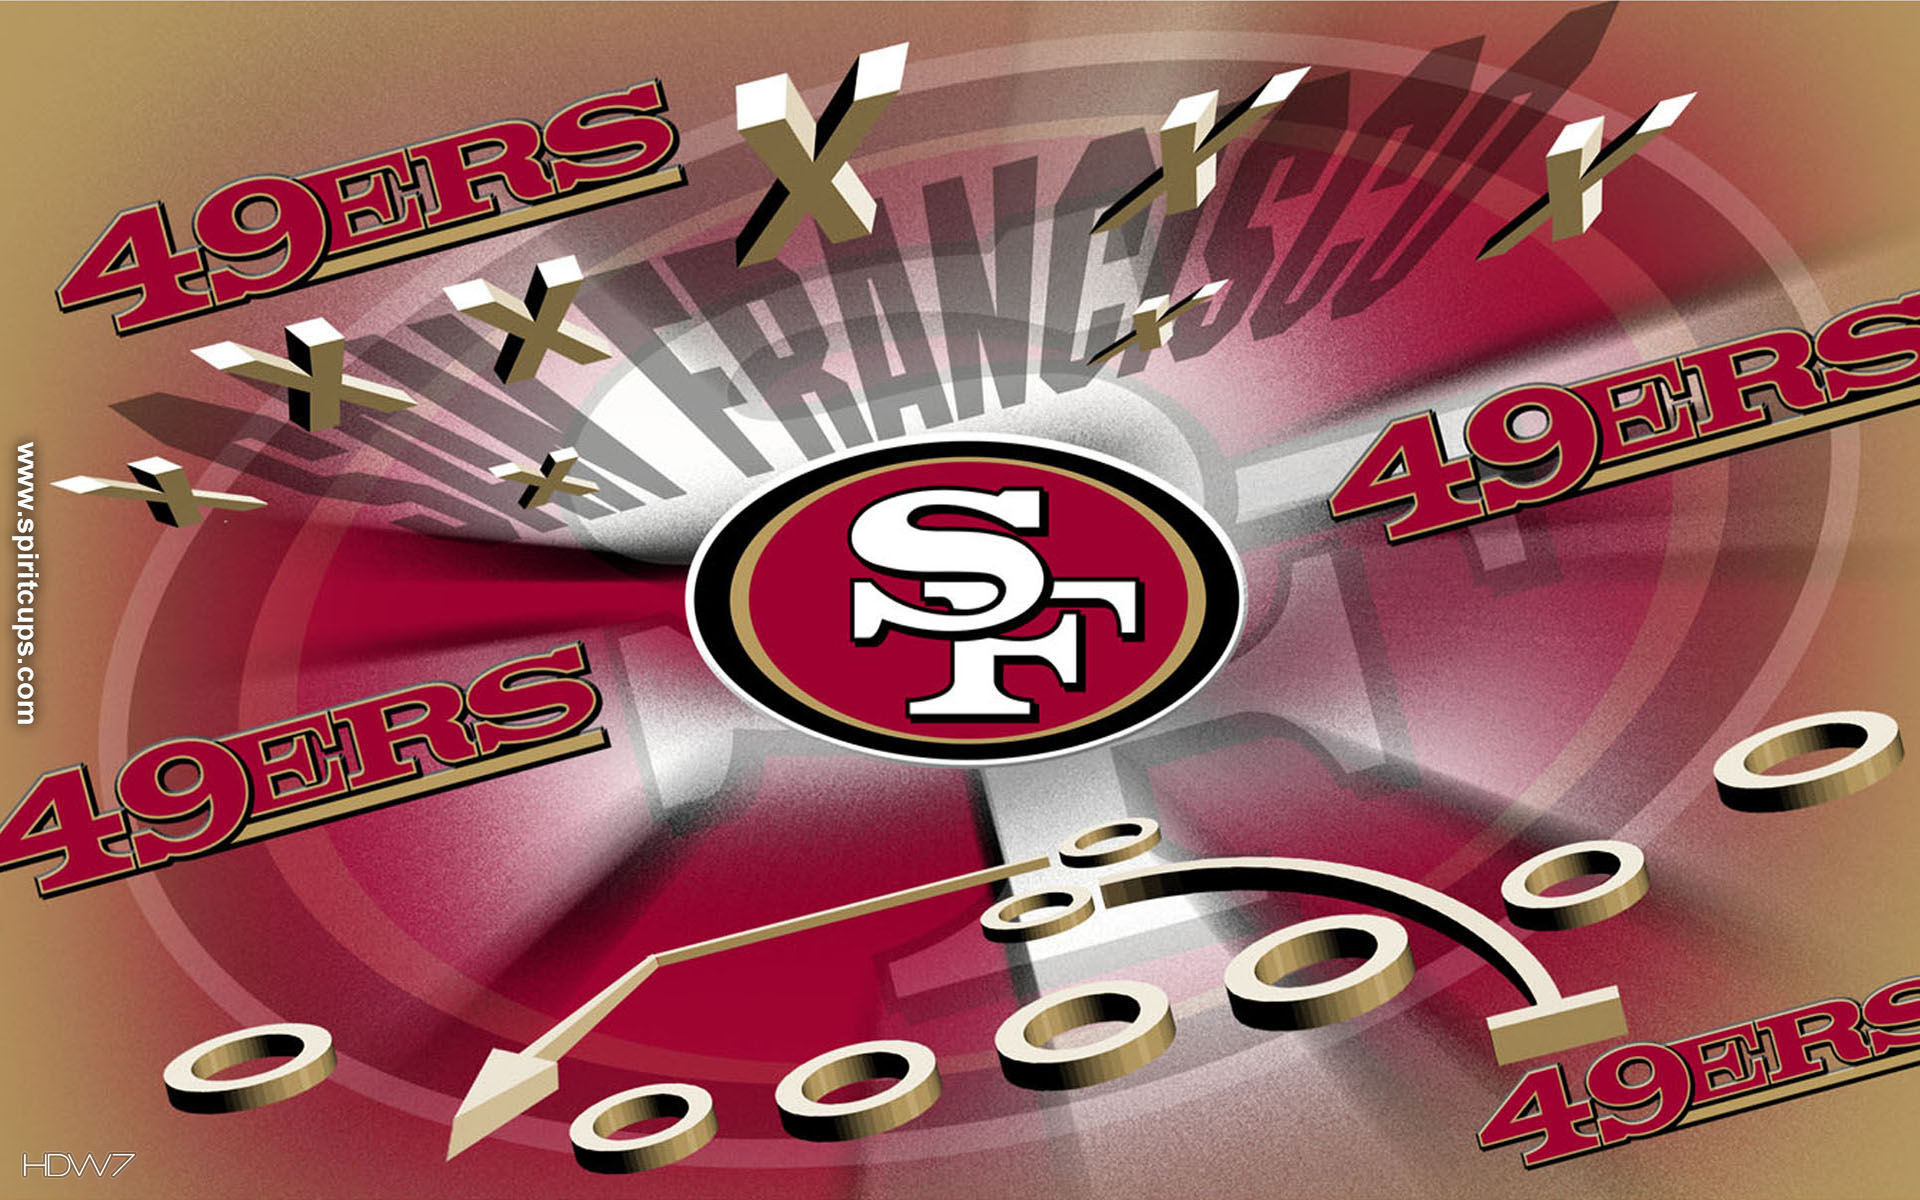 49er wallpaper 67 images 2048x1152 patrick willis 49ers wallpaper desktop wallpapers high definition monitor download free amazing background photos artwork 20481152 wallpaper hd voltagebd Images